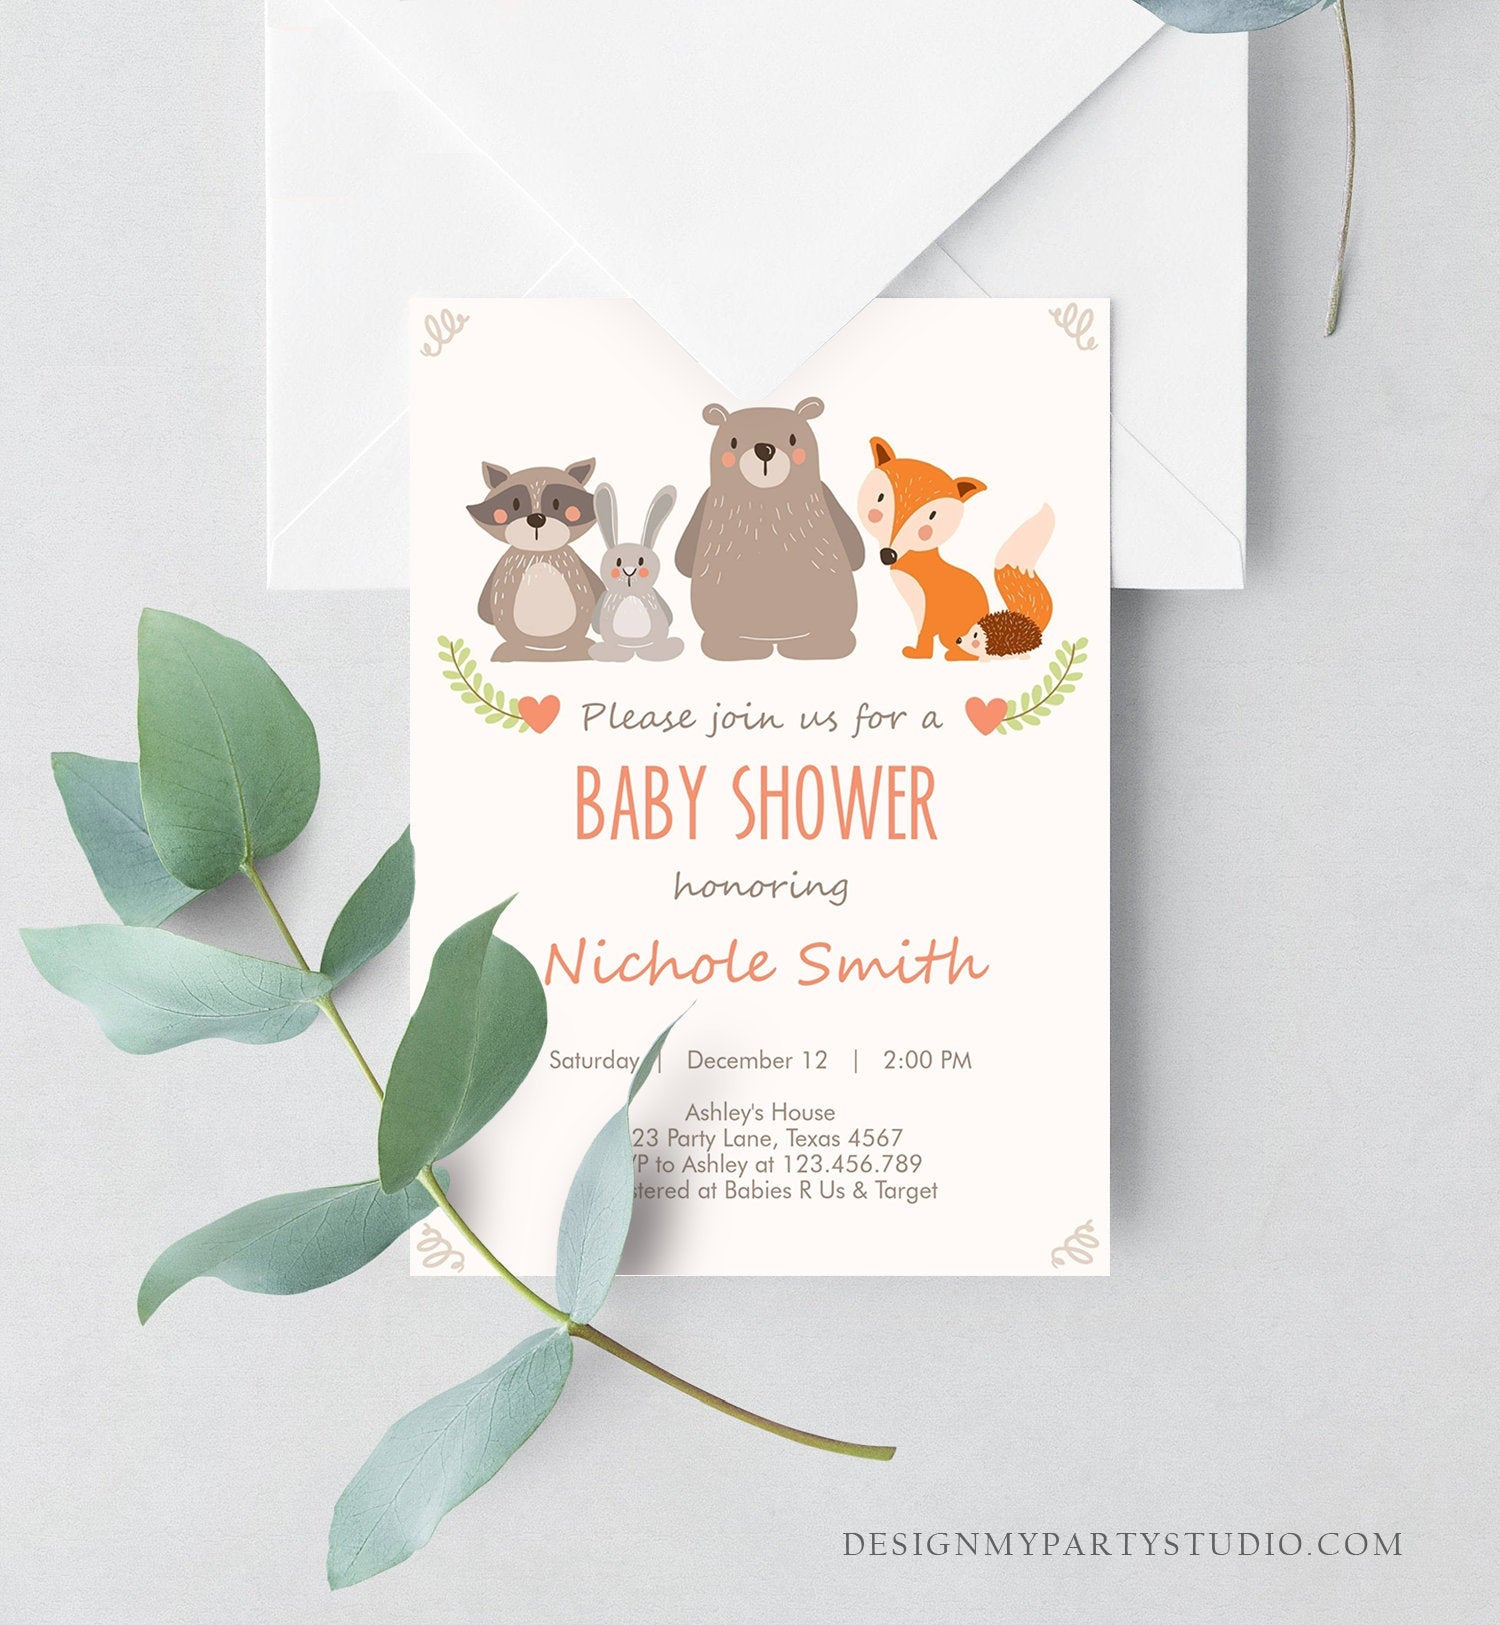 Editable Baby shower invitation Woodland Forest Animals Cute Animals Gender Neutral Bear Fox Invitation Template Download Digital Corjl 0010